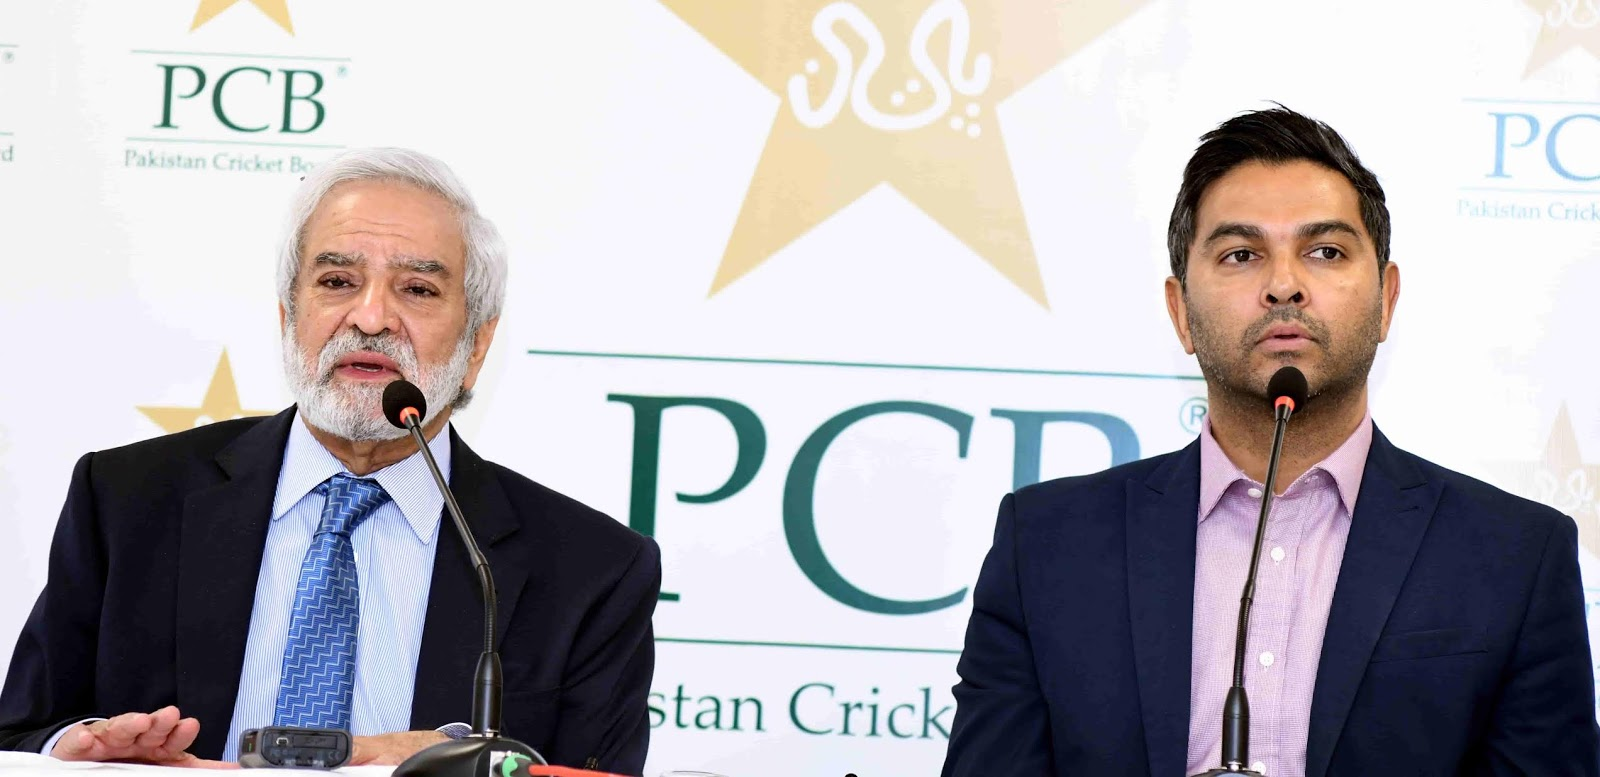 PCB Says Fans Made 'Resilient' HBL PSL 2019 An Overwhelming Success